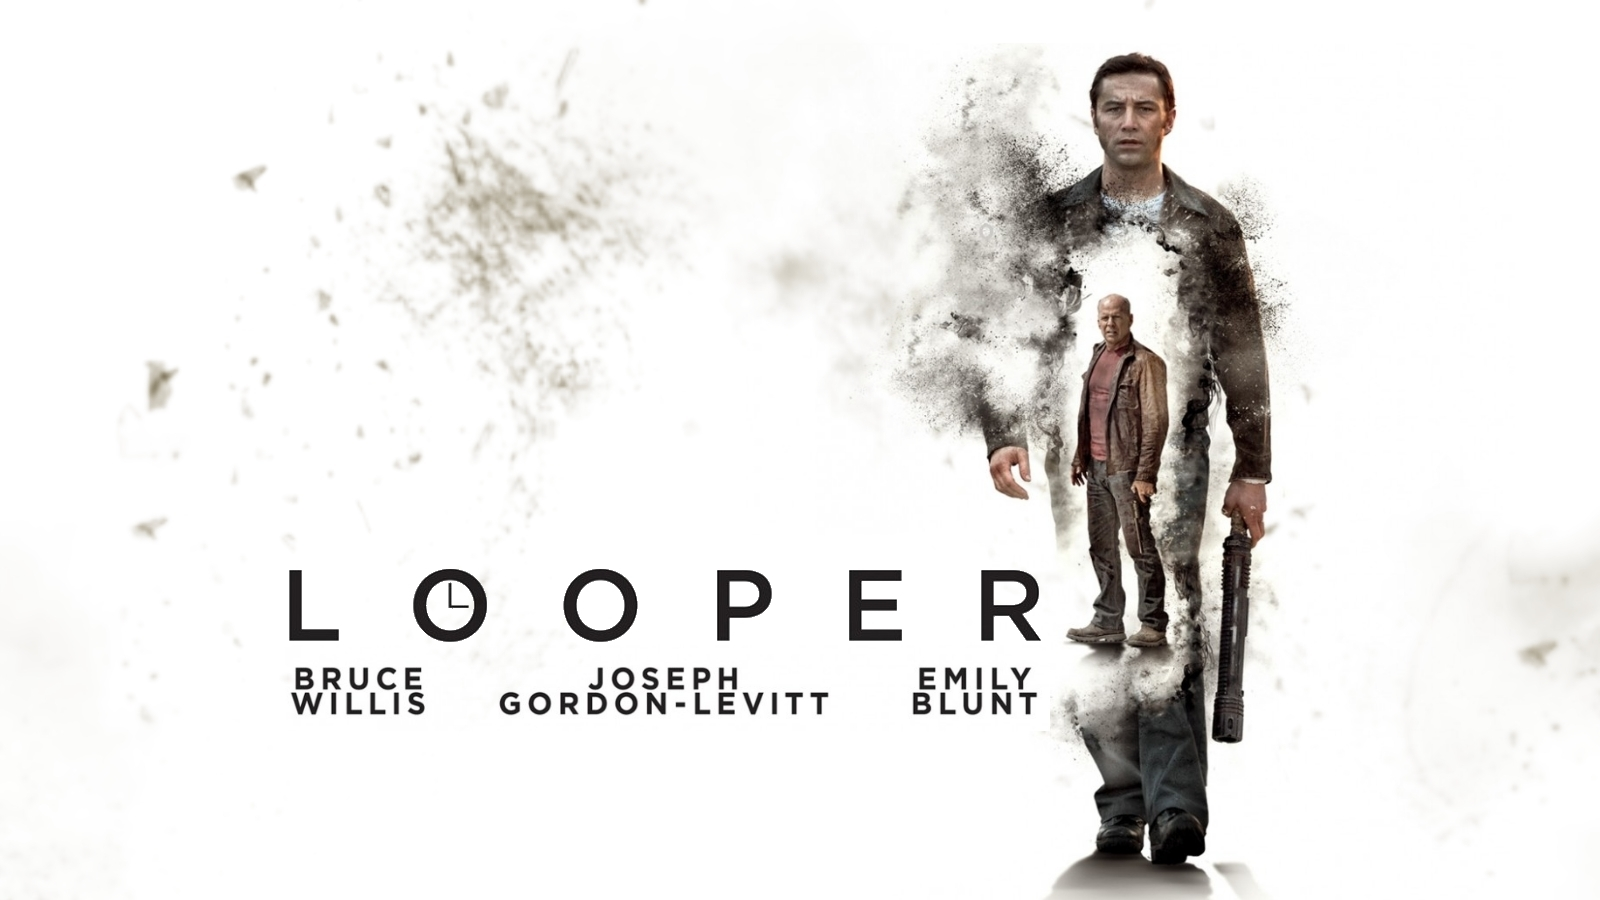 http://2.bp.blogspot.com/-agzYUvhvX4Q/UF3kFTFNvRI/AAAAAAAAQlo/0iXmAkhSVYY/s1600/Looper_Movie_Wallpaper_1600x900.jpg